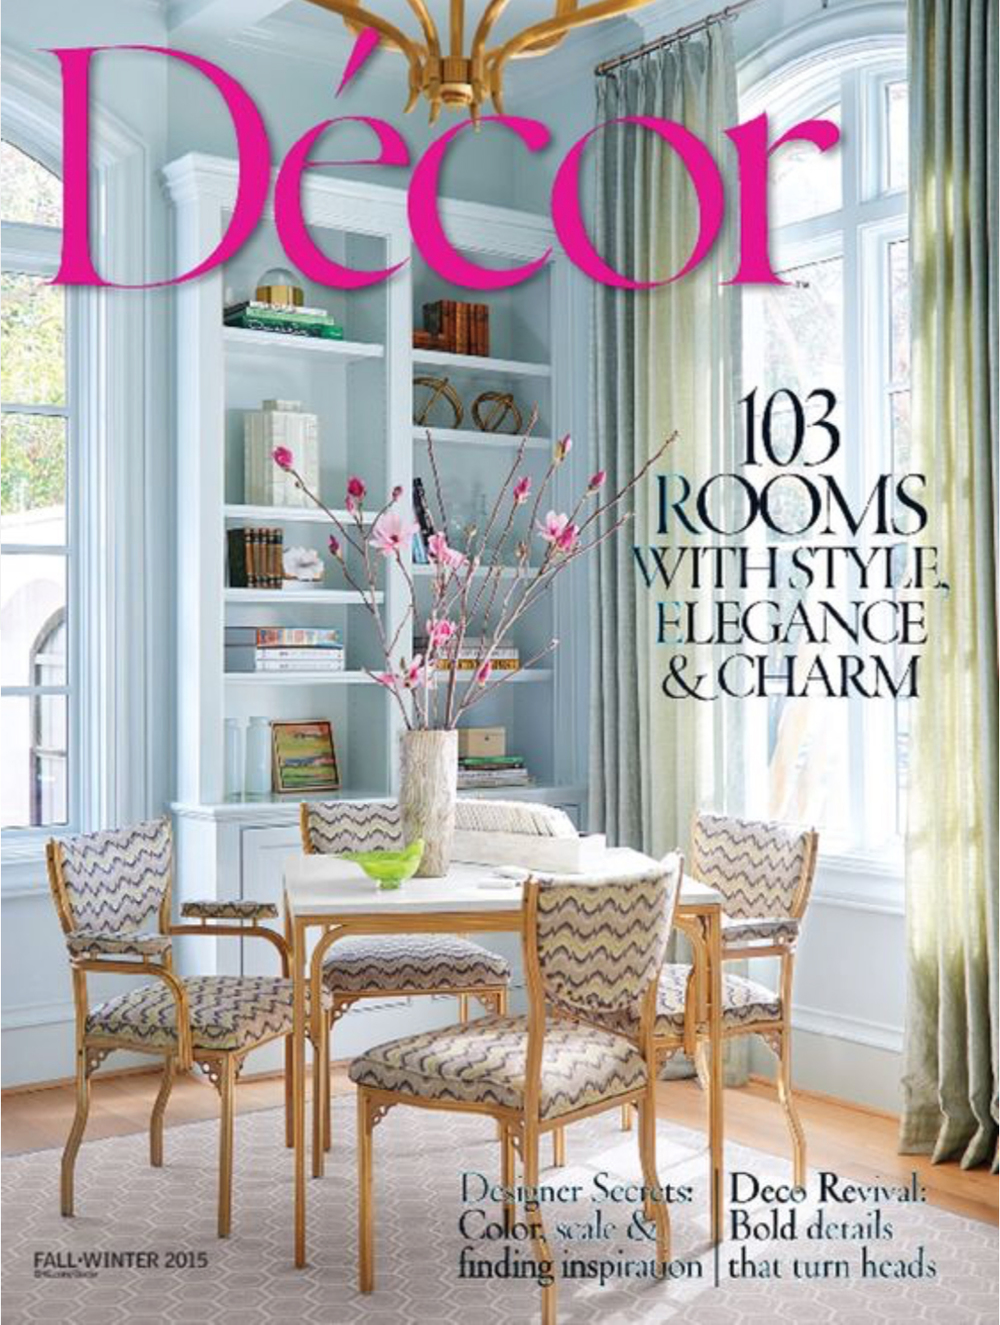 Decor_cover.jpg